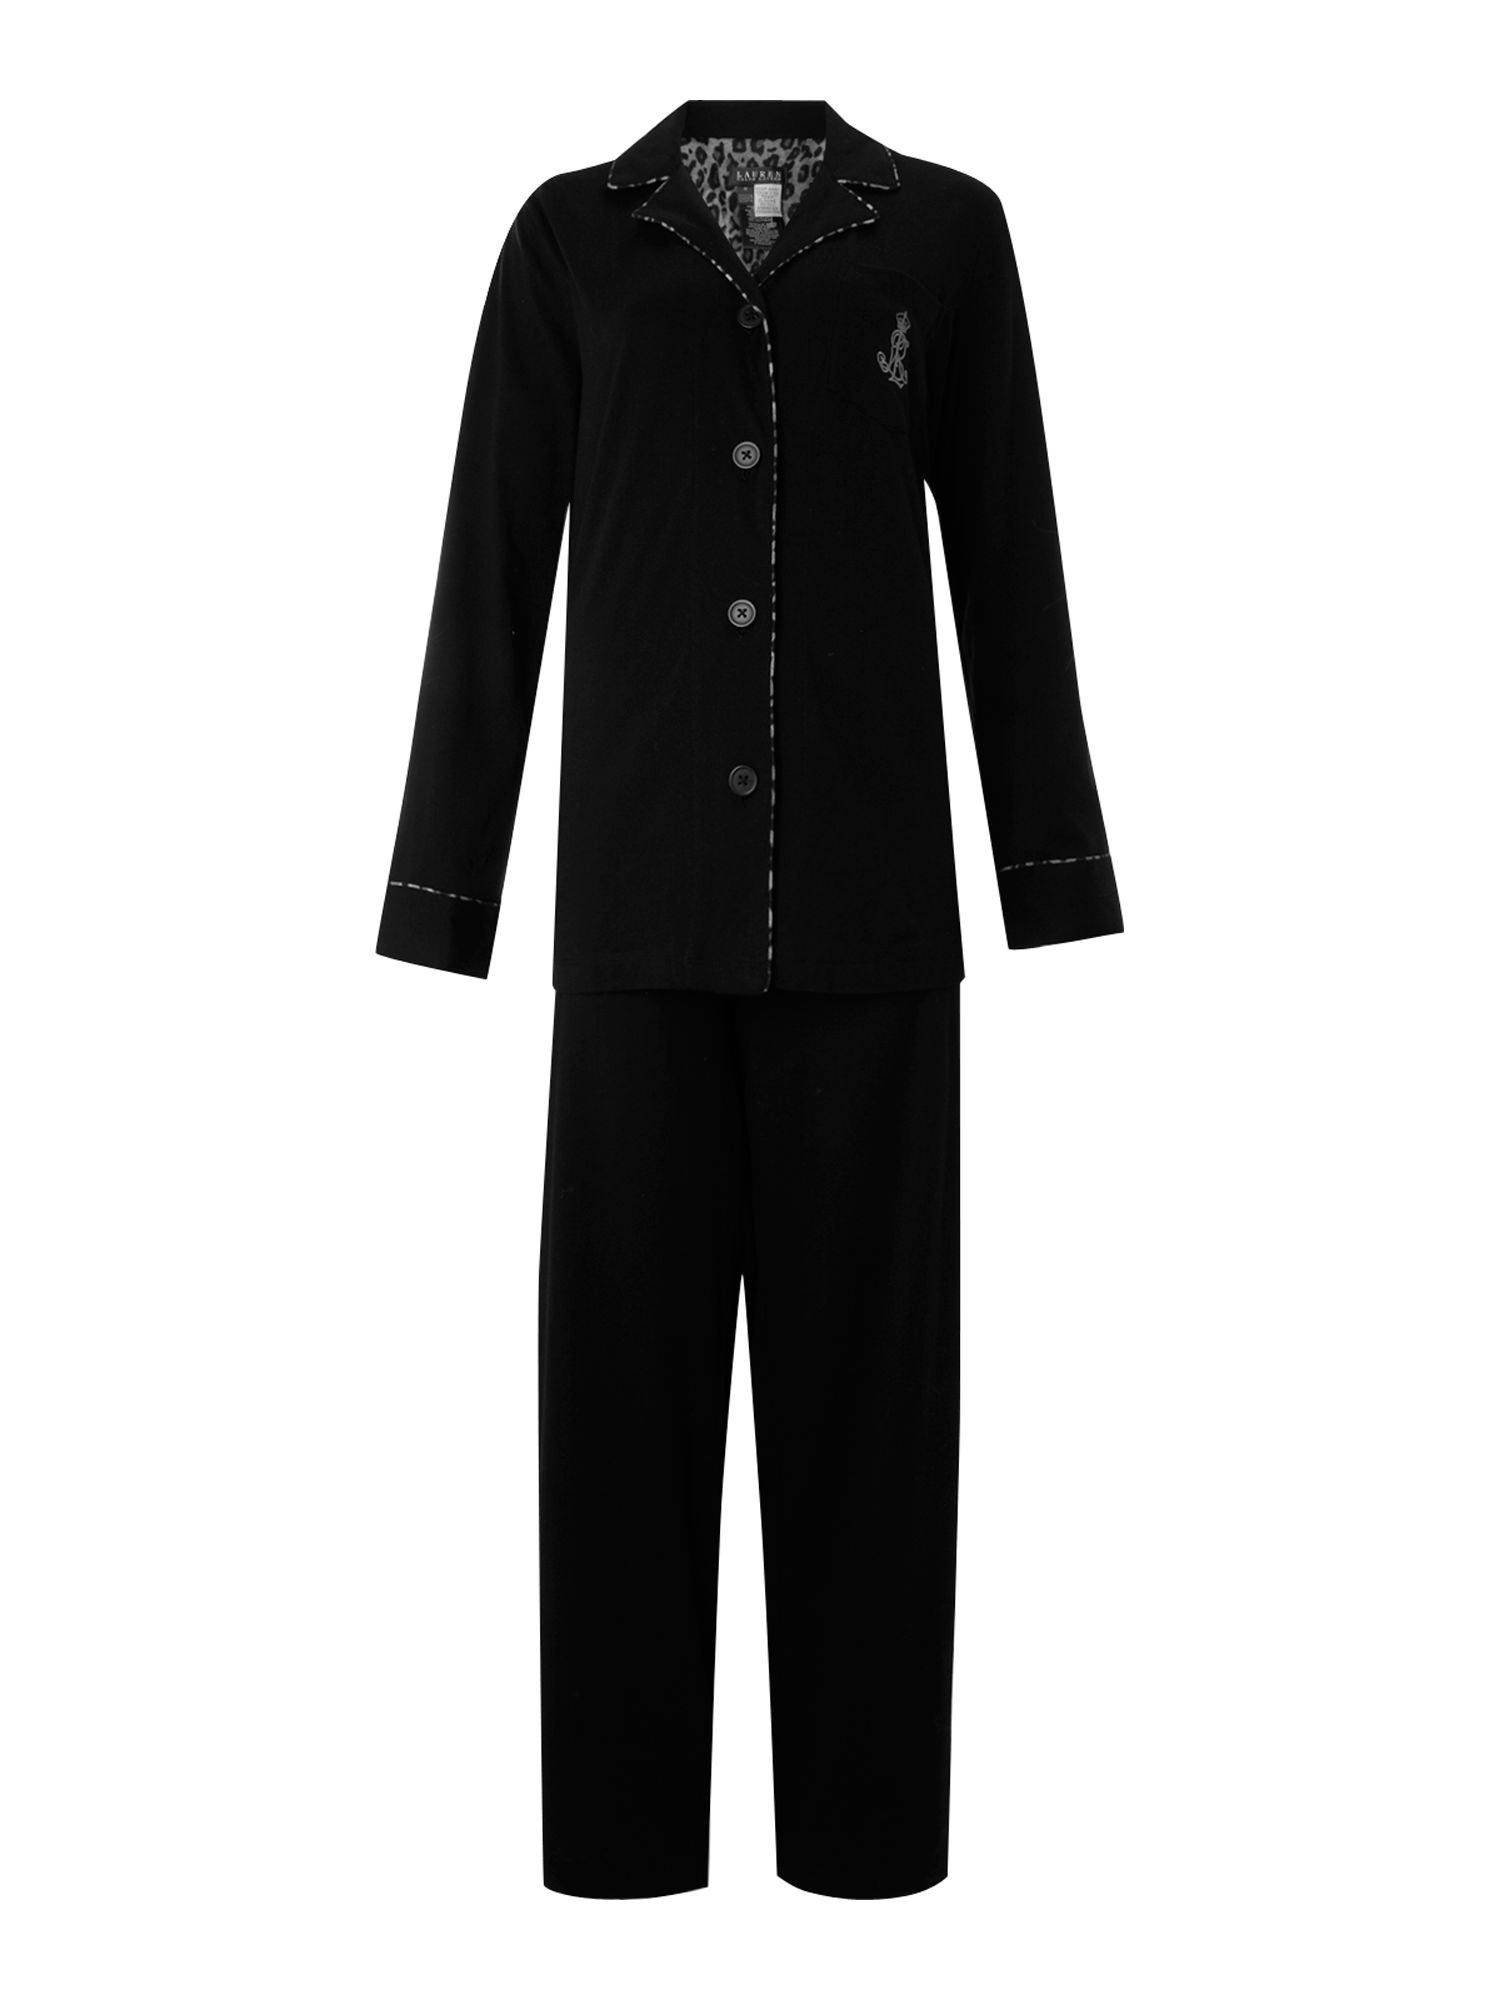 Harbour hill inn classic notch collar PJ set